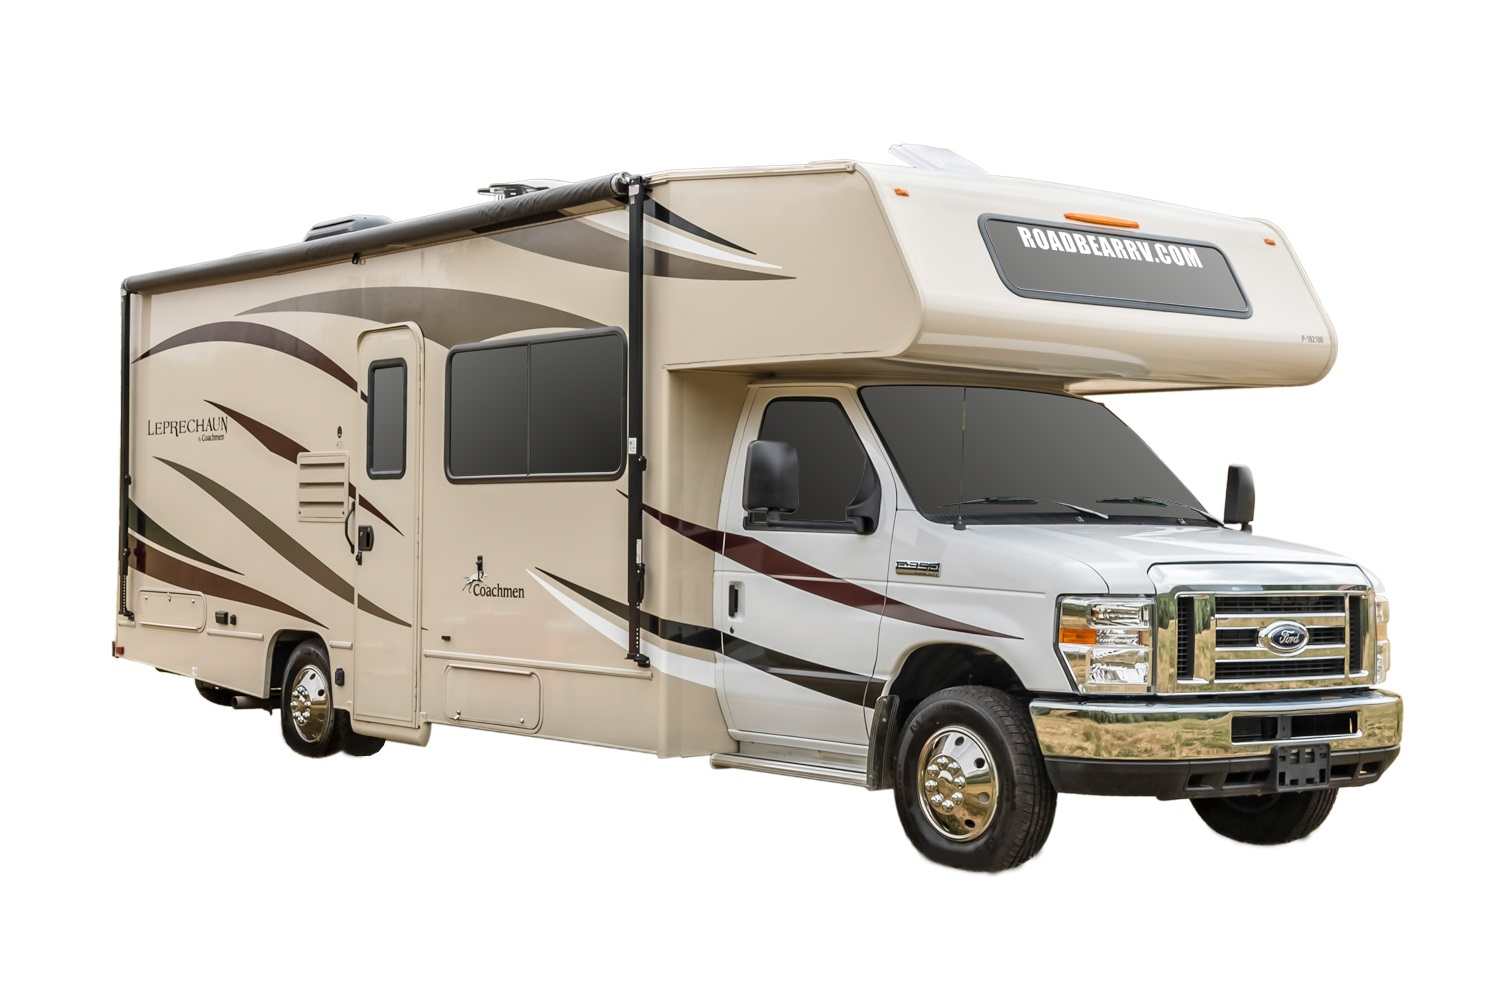 Road Bear RV 25-27 ft Class C Motorhome with slide out